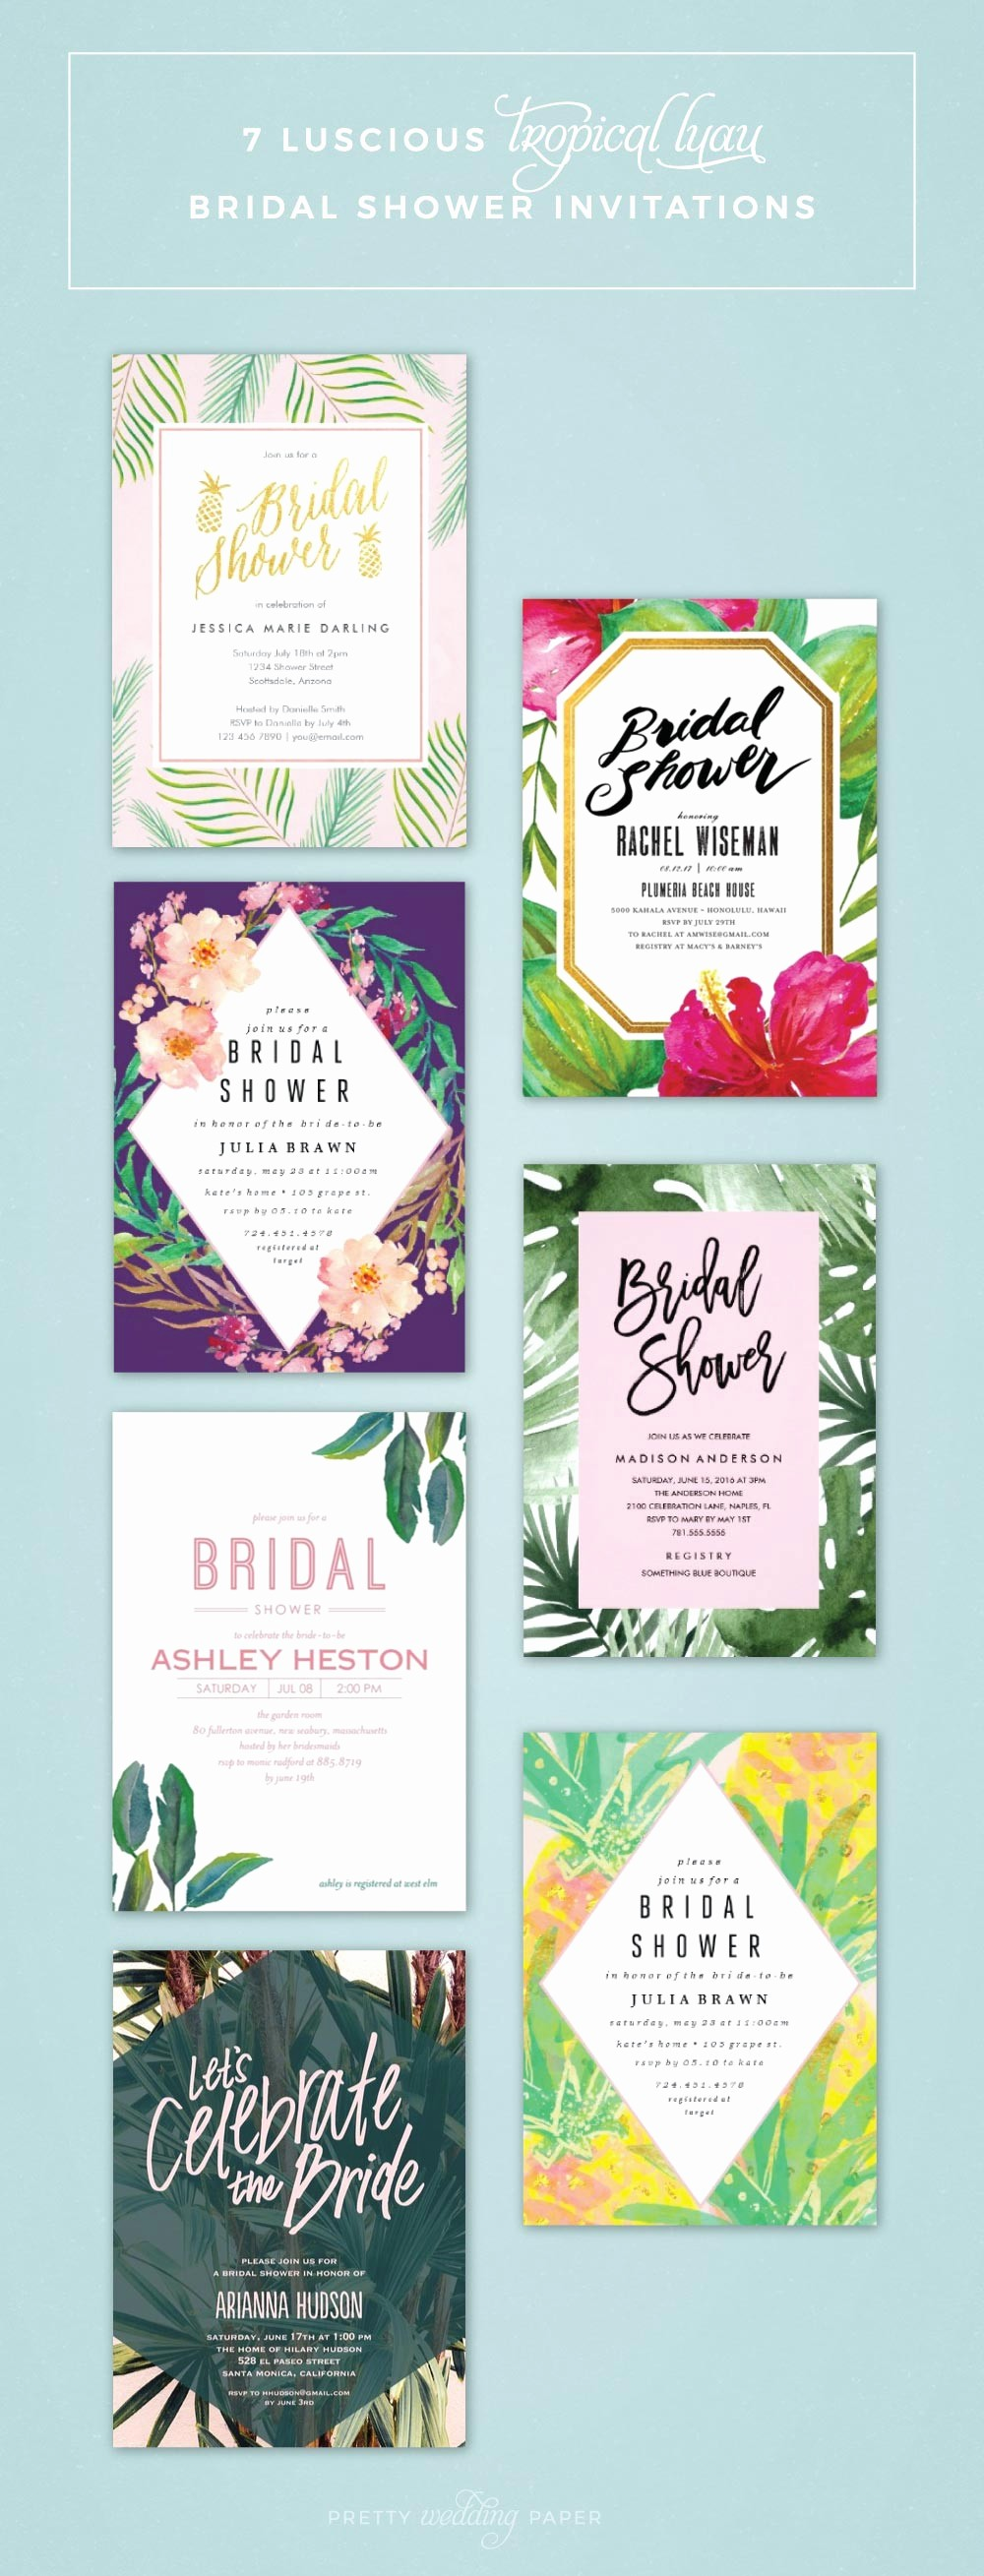 Hawaiian themed Invitation Templates Free Awesome Others Custom Luau Invitations for Your Tropical Getaway